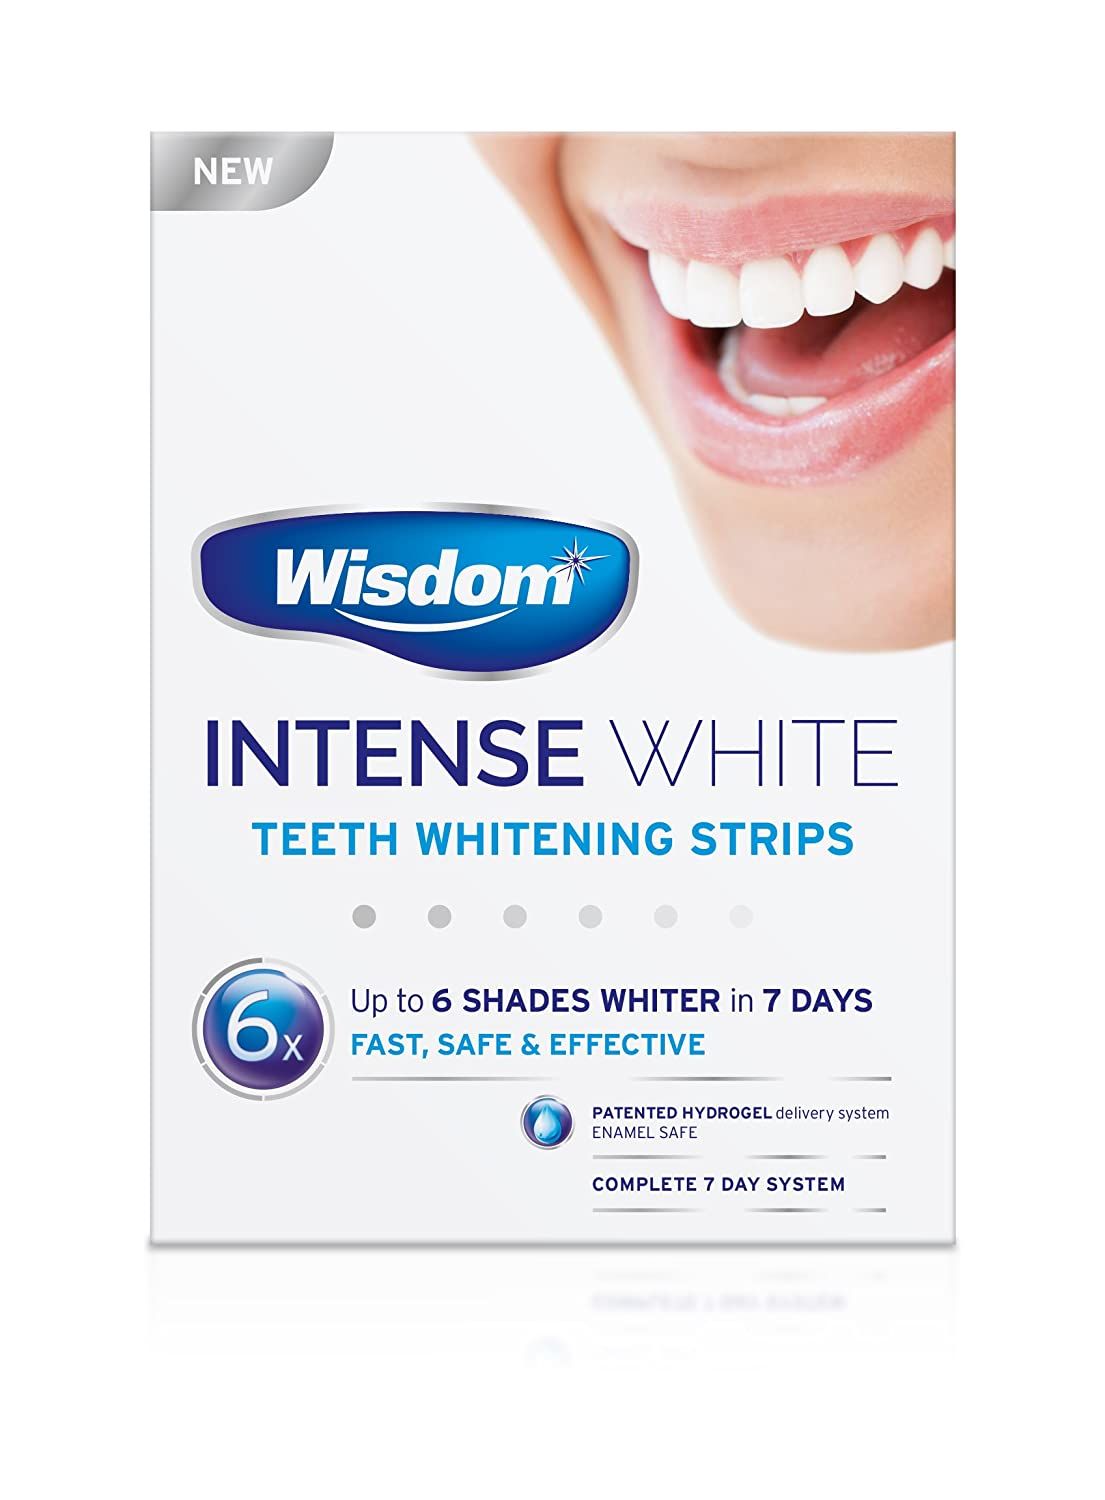 7dc859886d6 Wisdom Intense White - Teeth Whitening Strips (6 Shades Whiter in 7 Days)   Amazon.co.uk  Health   Personal Care